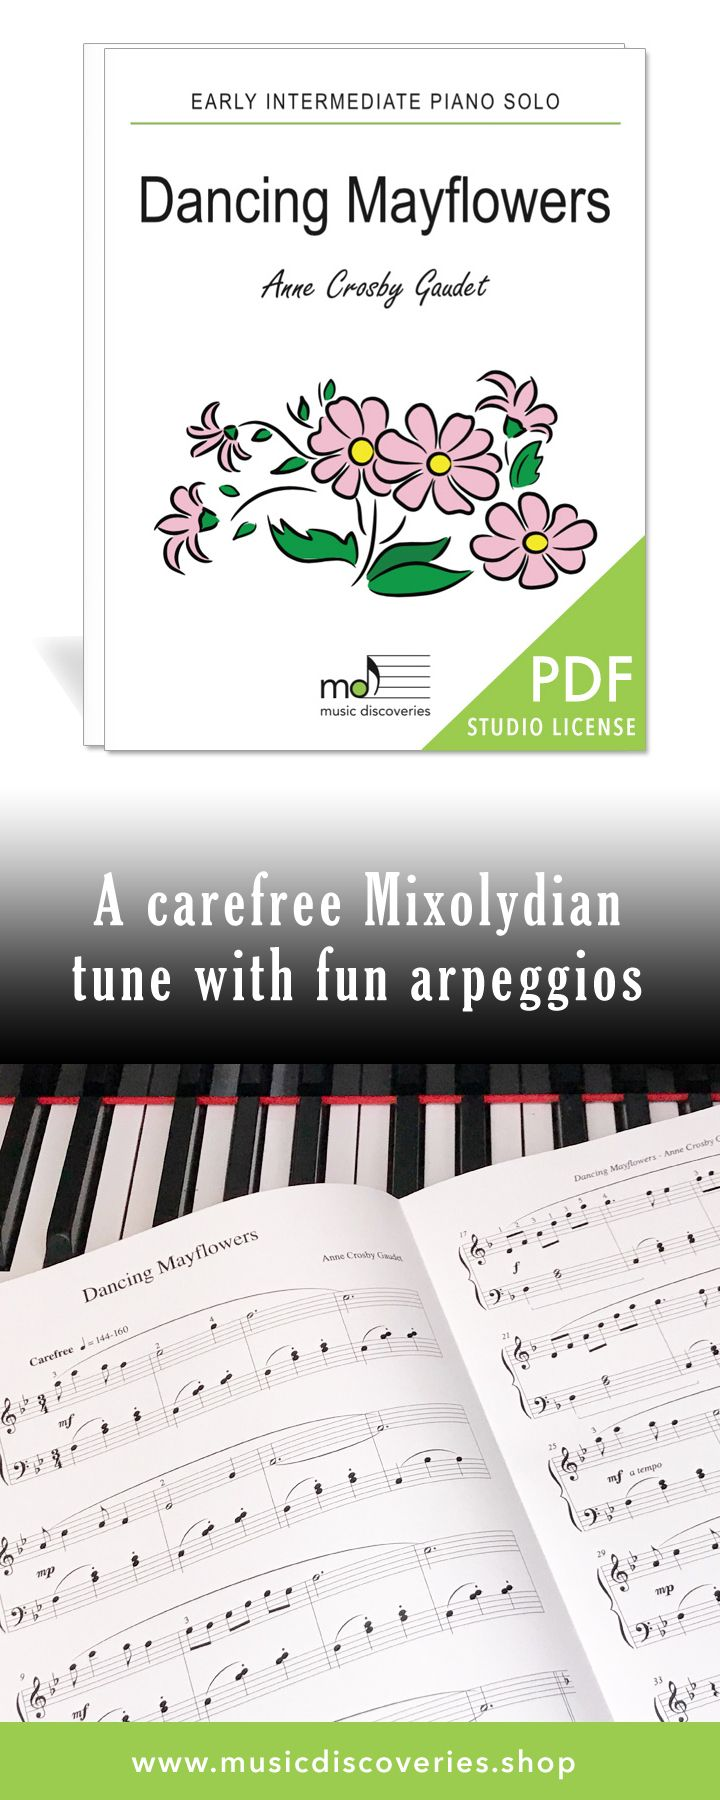 Dancing Mayflowers lilts along in a carefree Mixolydian mode. It features a waltzing left hand pattern and syncopated right hand rhythm. Students also explore arpeggio patterns and triplets in this early intermediate piano solo. #piano #pianoteaching #sheetmusic